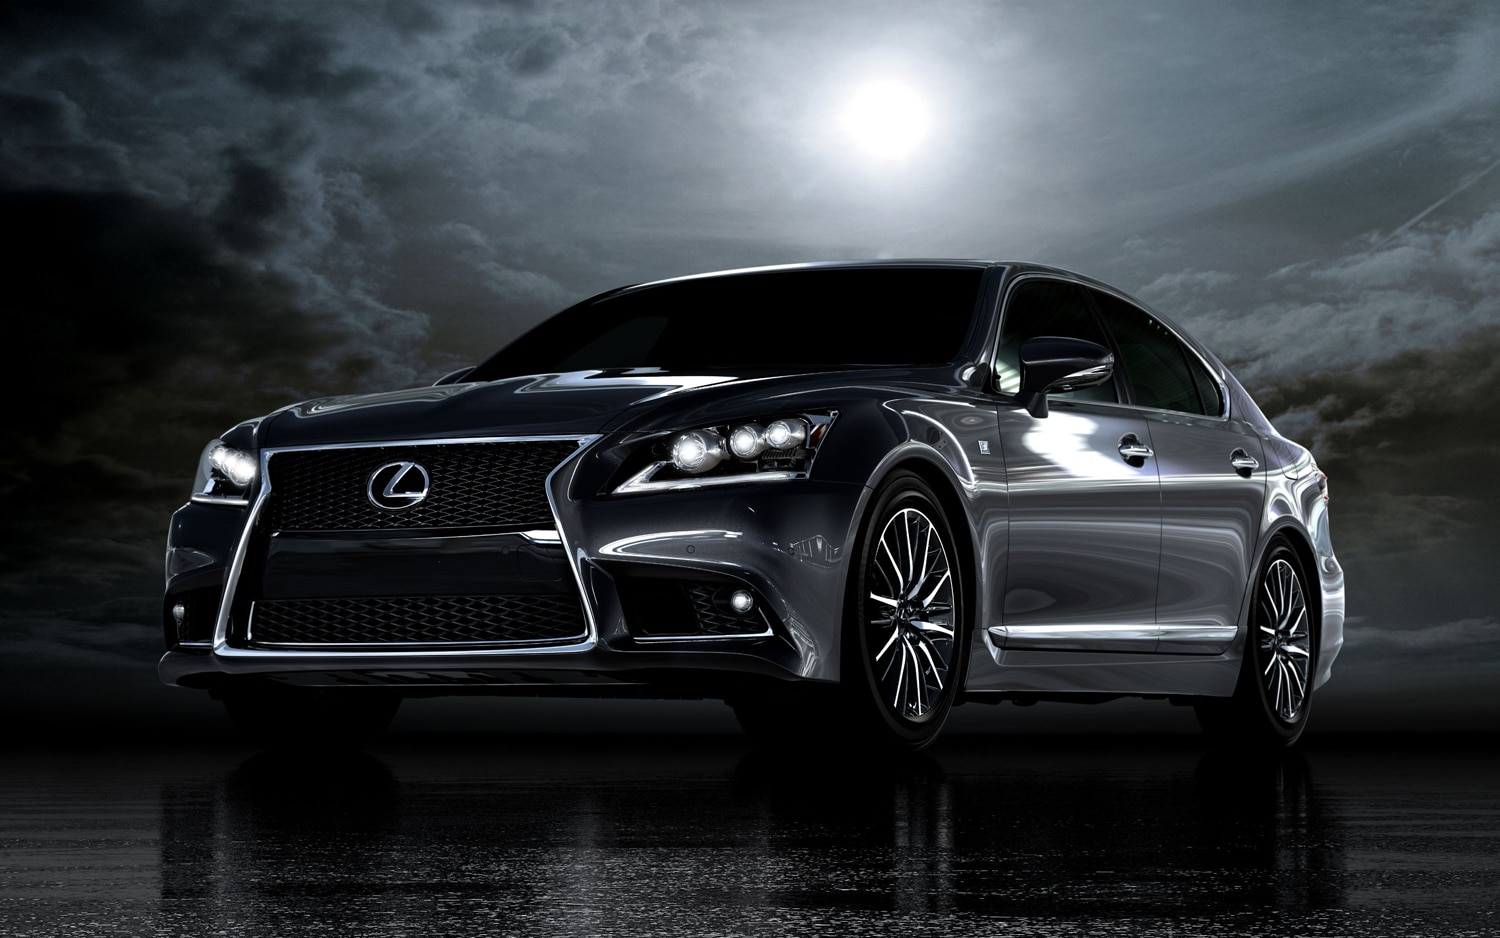 2013 Lexus LS 460 F Sport Front Three Quarter 21